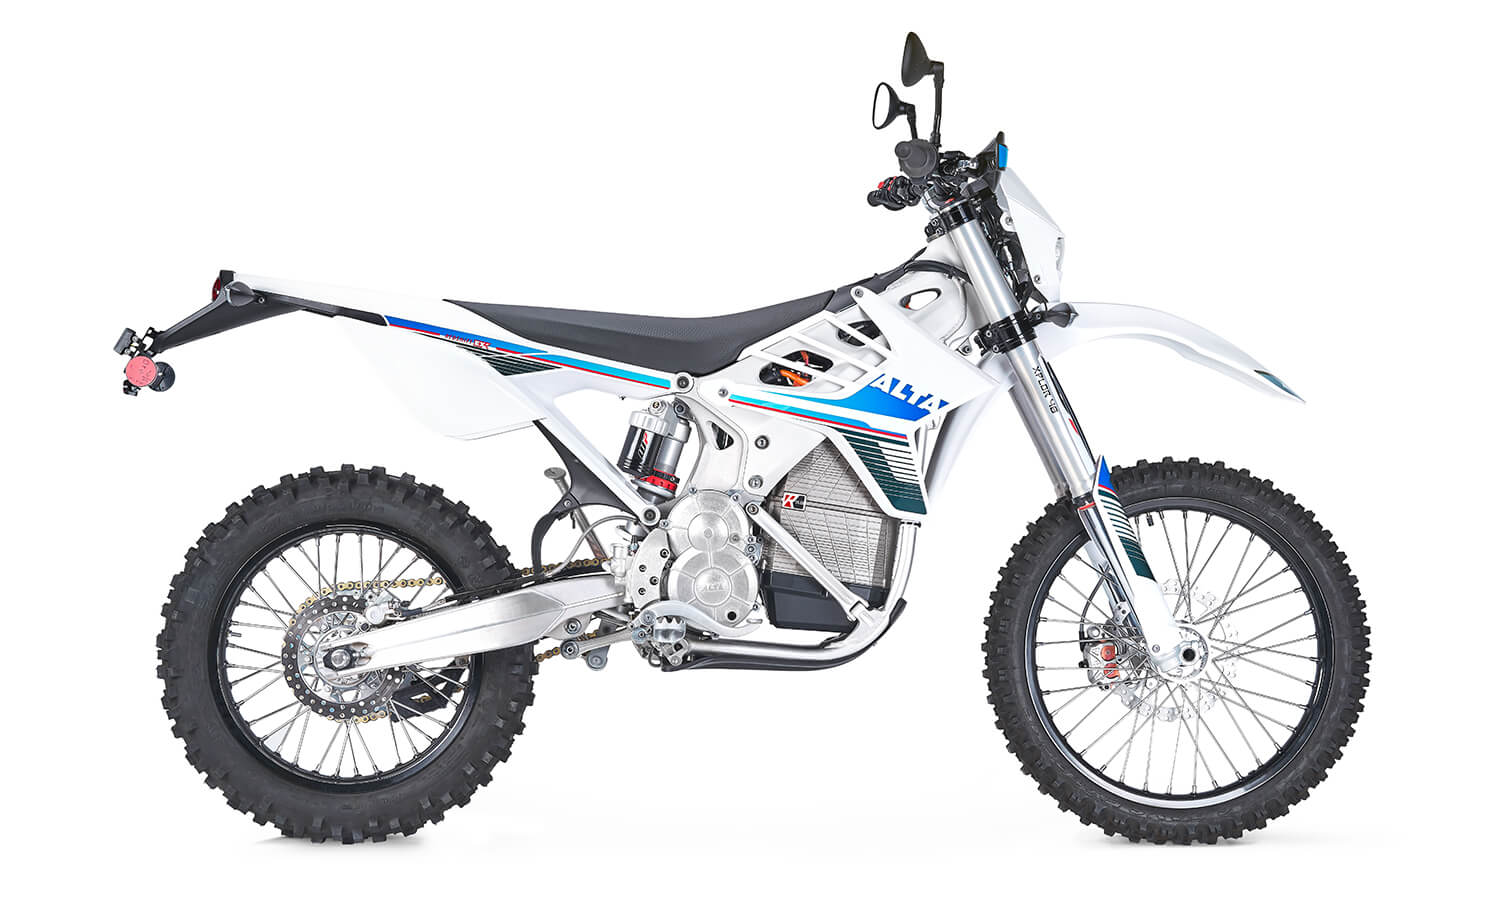 Motorcycle Stealth Enduro 250: features, reviews, features 43